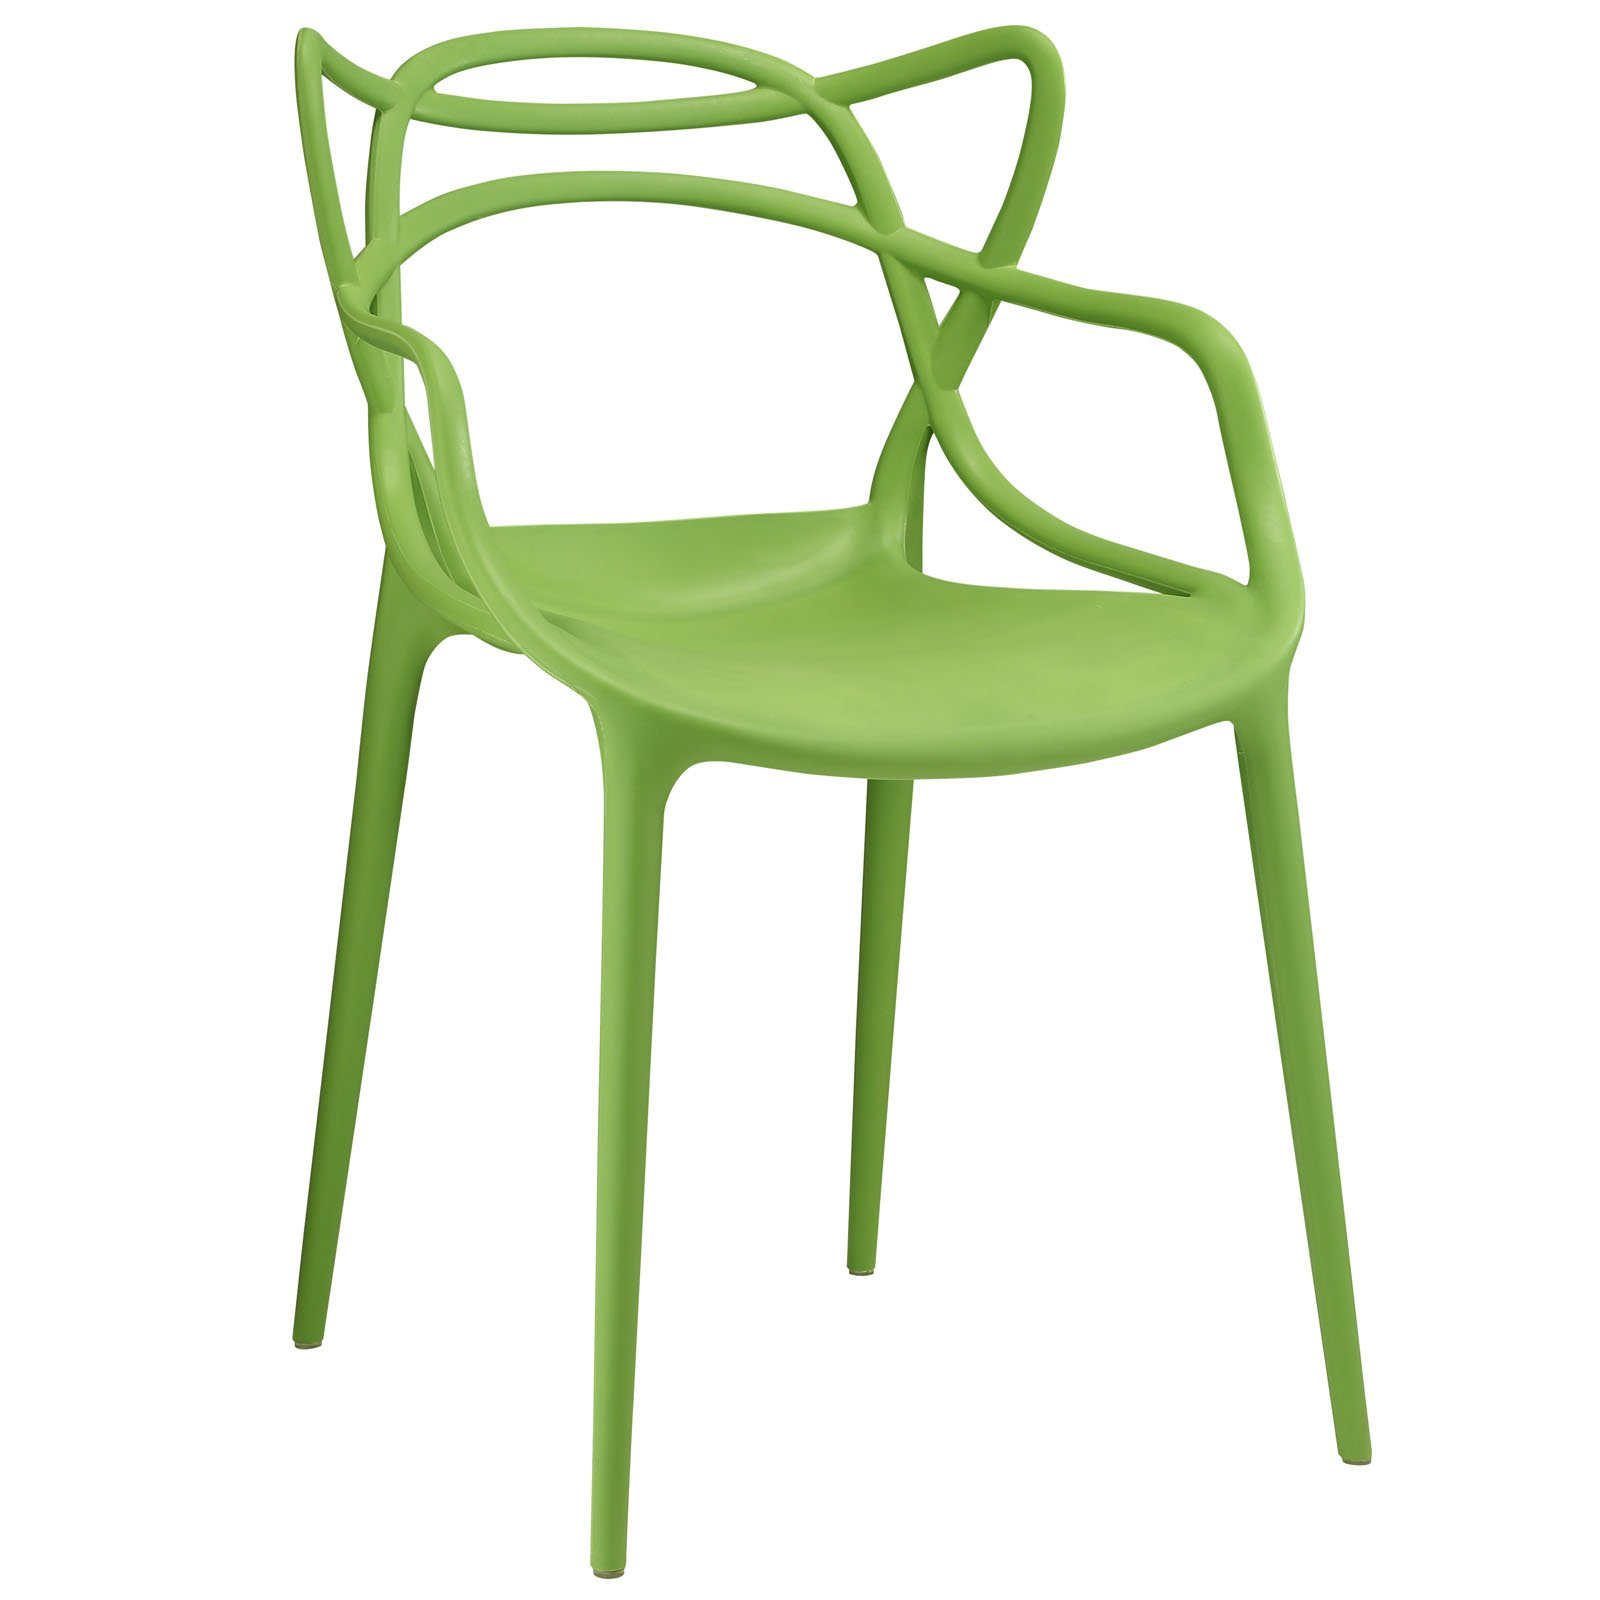 Funky Dining Room Chairs: Chair Pads & Cushions